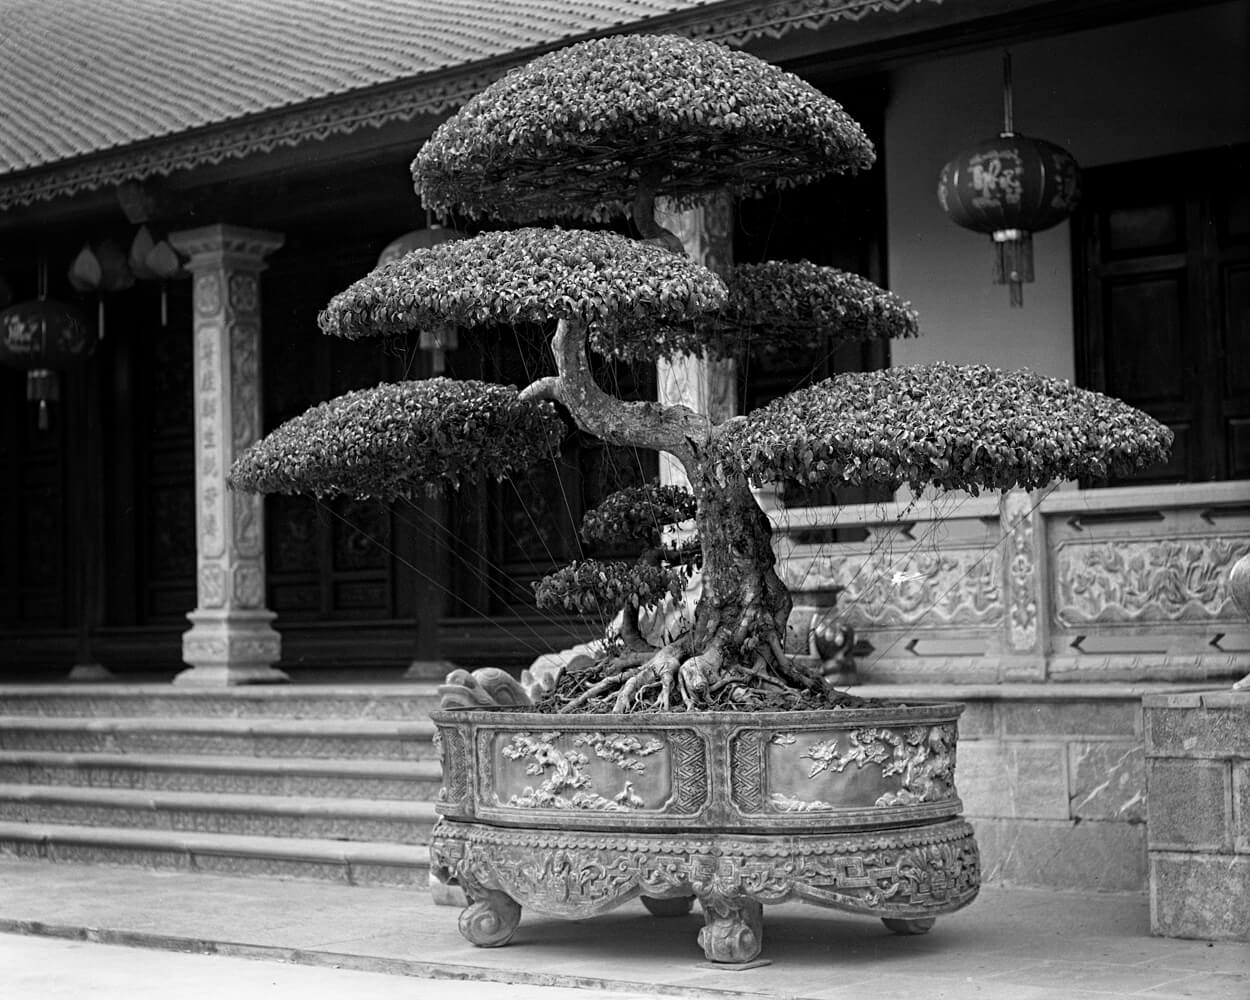 Sculptured Bush 1 - 5 Frames... Around Hai Phong, Vietnam on my 1920 Graflex RB Tele 4x5 and ILFORD HP5 PLUS (4x5 Format / EI 400 / Voigtlander Heliar 210mm f/4.5 c.1920 lens) - by Stuart Kinkade